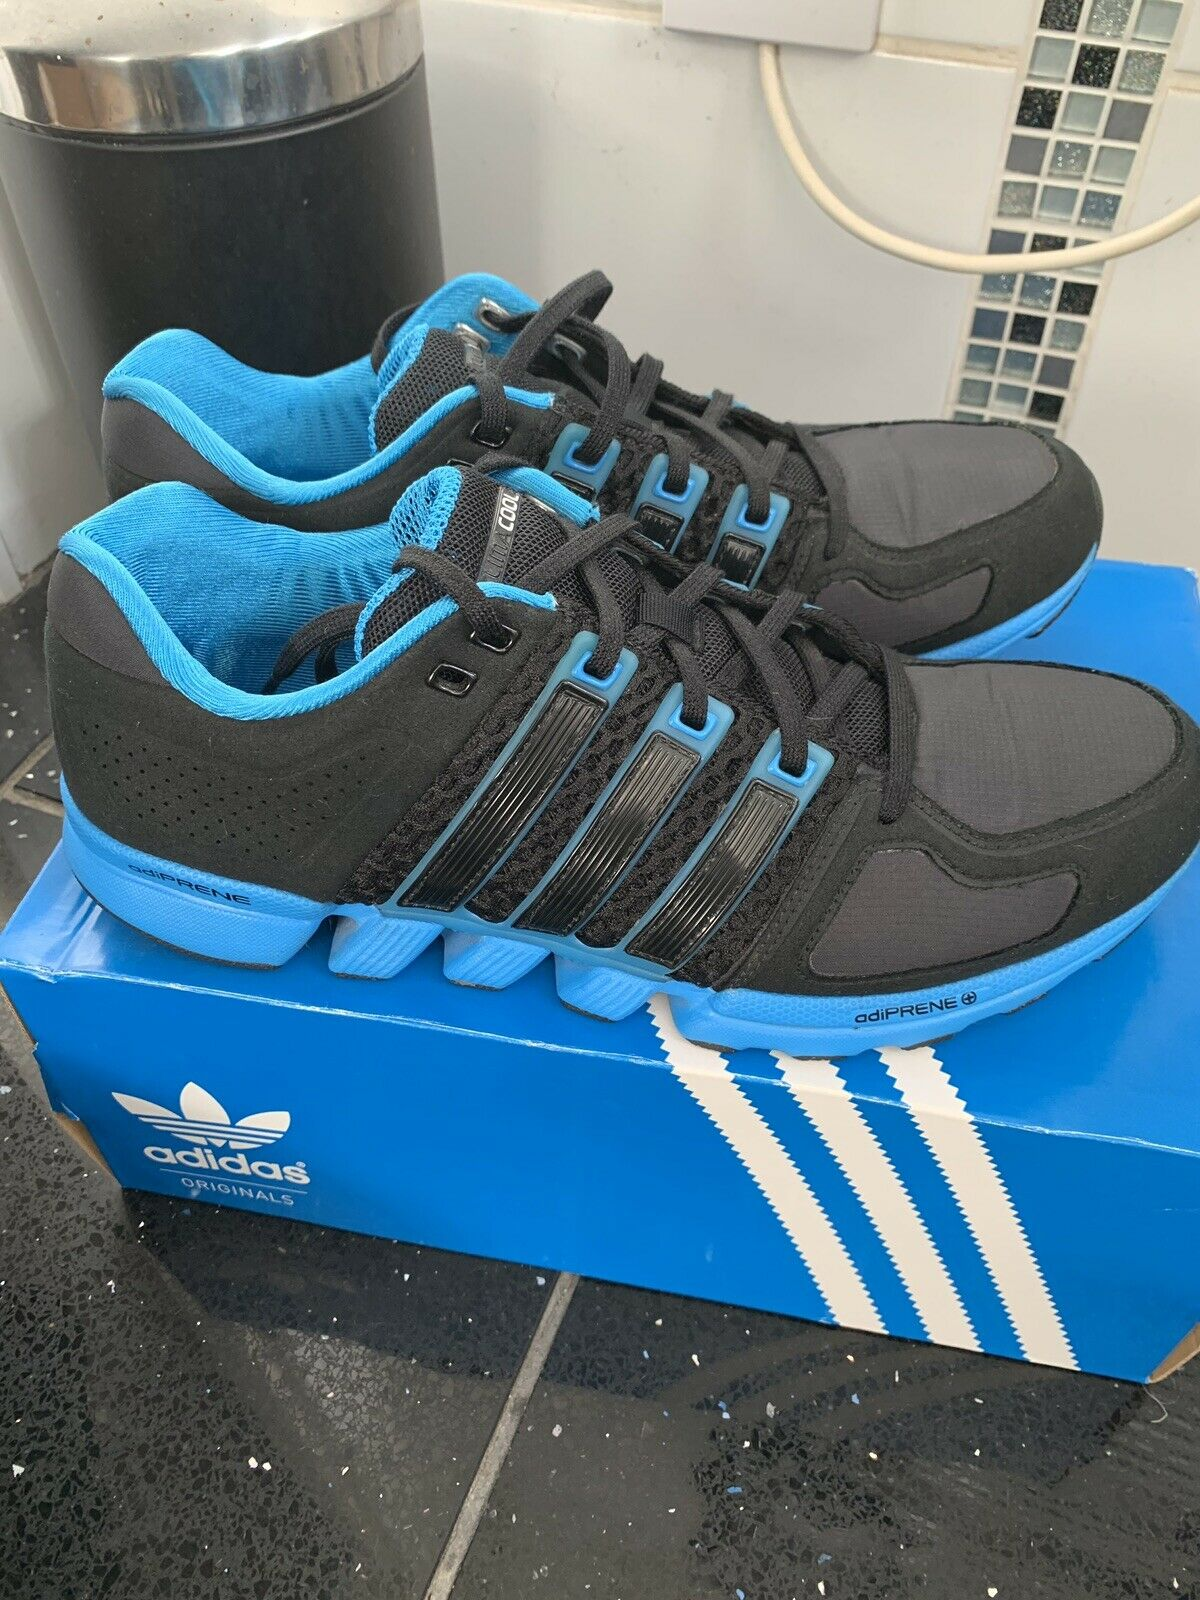 Adidas Runbox 1.1 Size 9  1 2  RRP .95  perfect